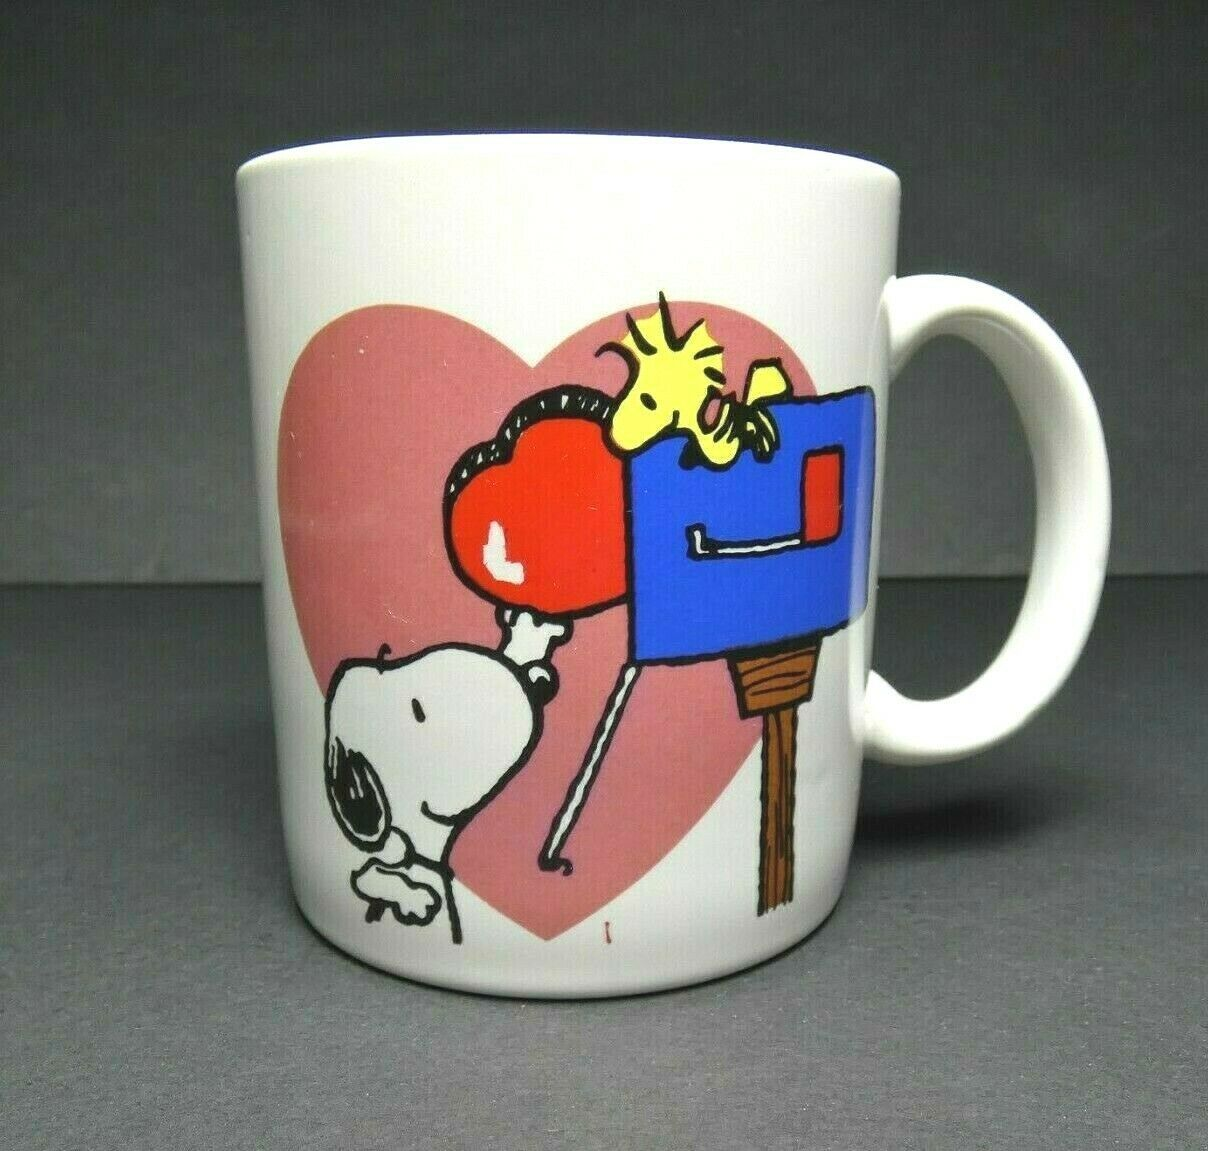 Peanuts Snoopy Mug Coffee Cup A Heart for You Woodstock Mailbox Applause Flaw - $9.41